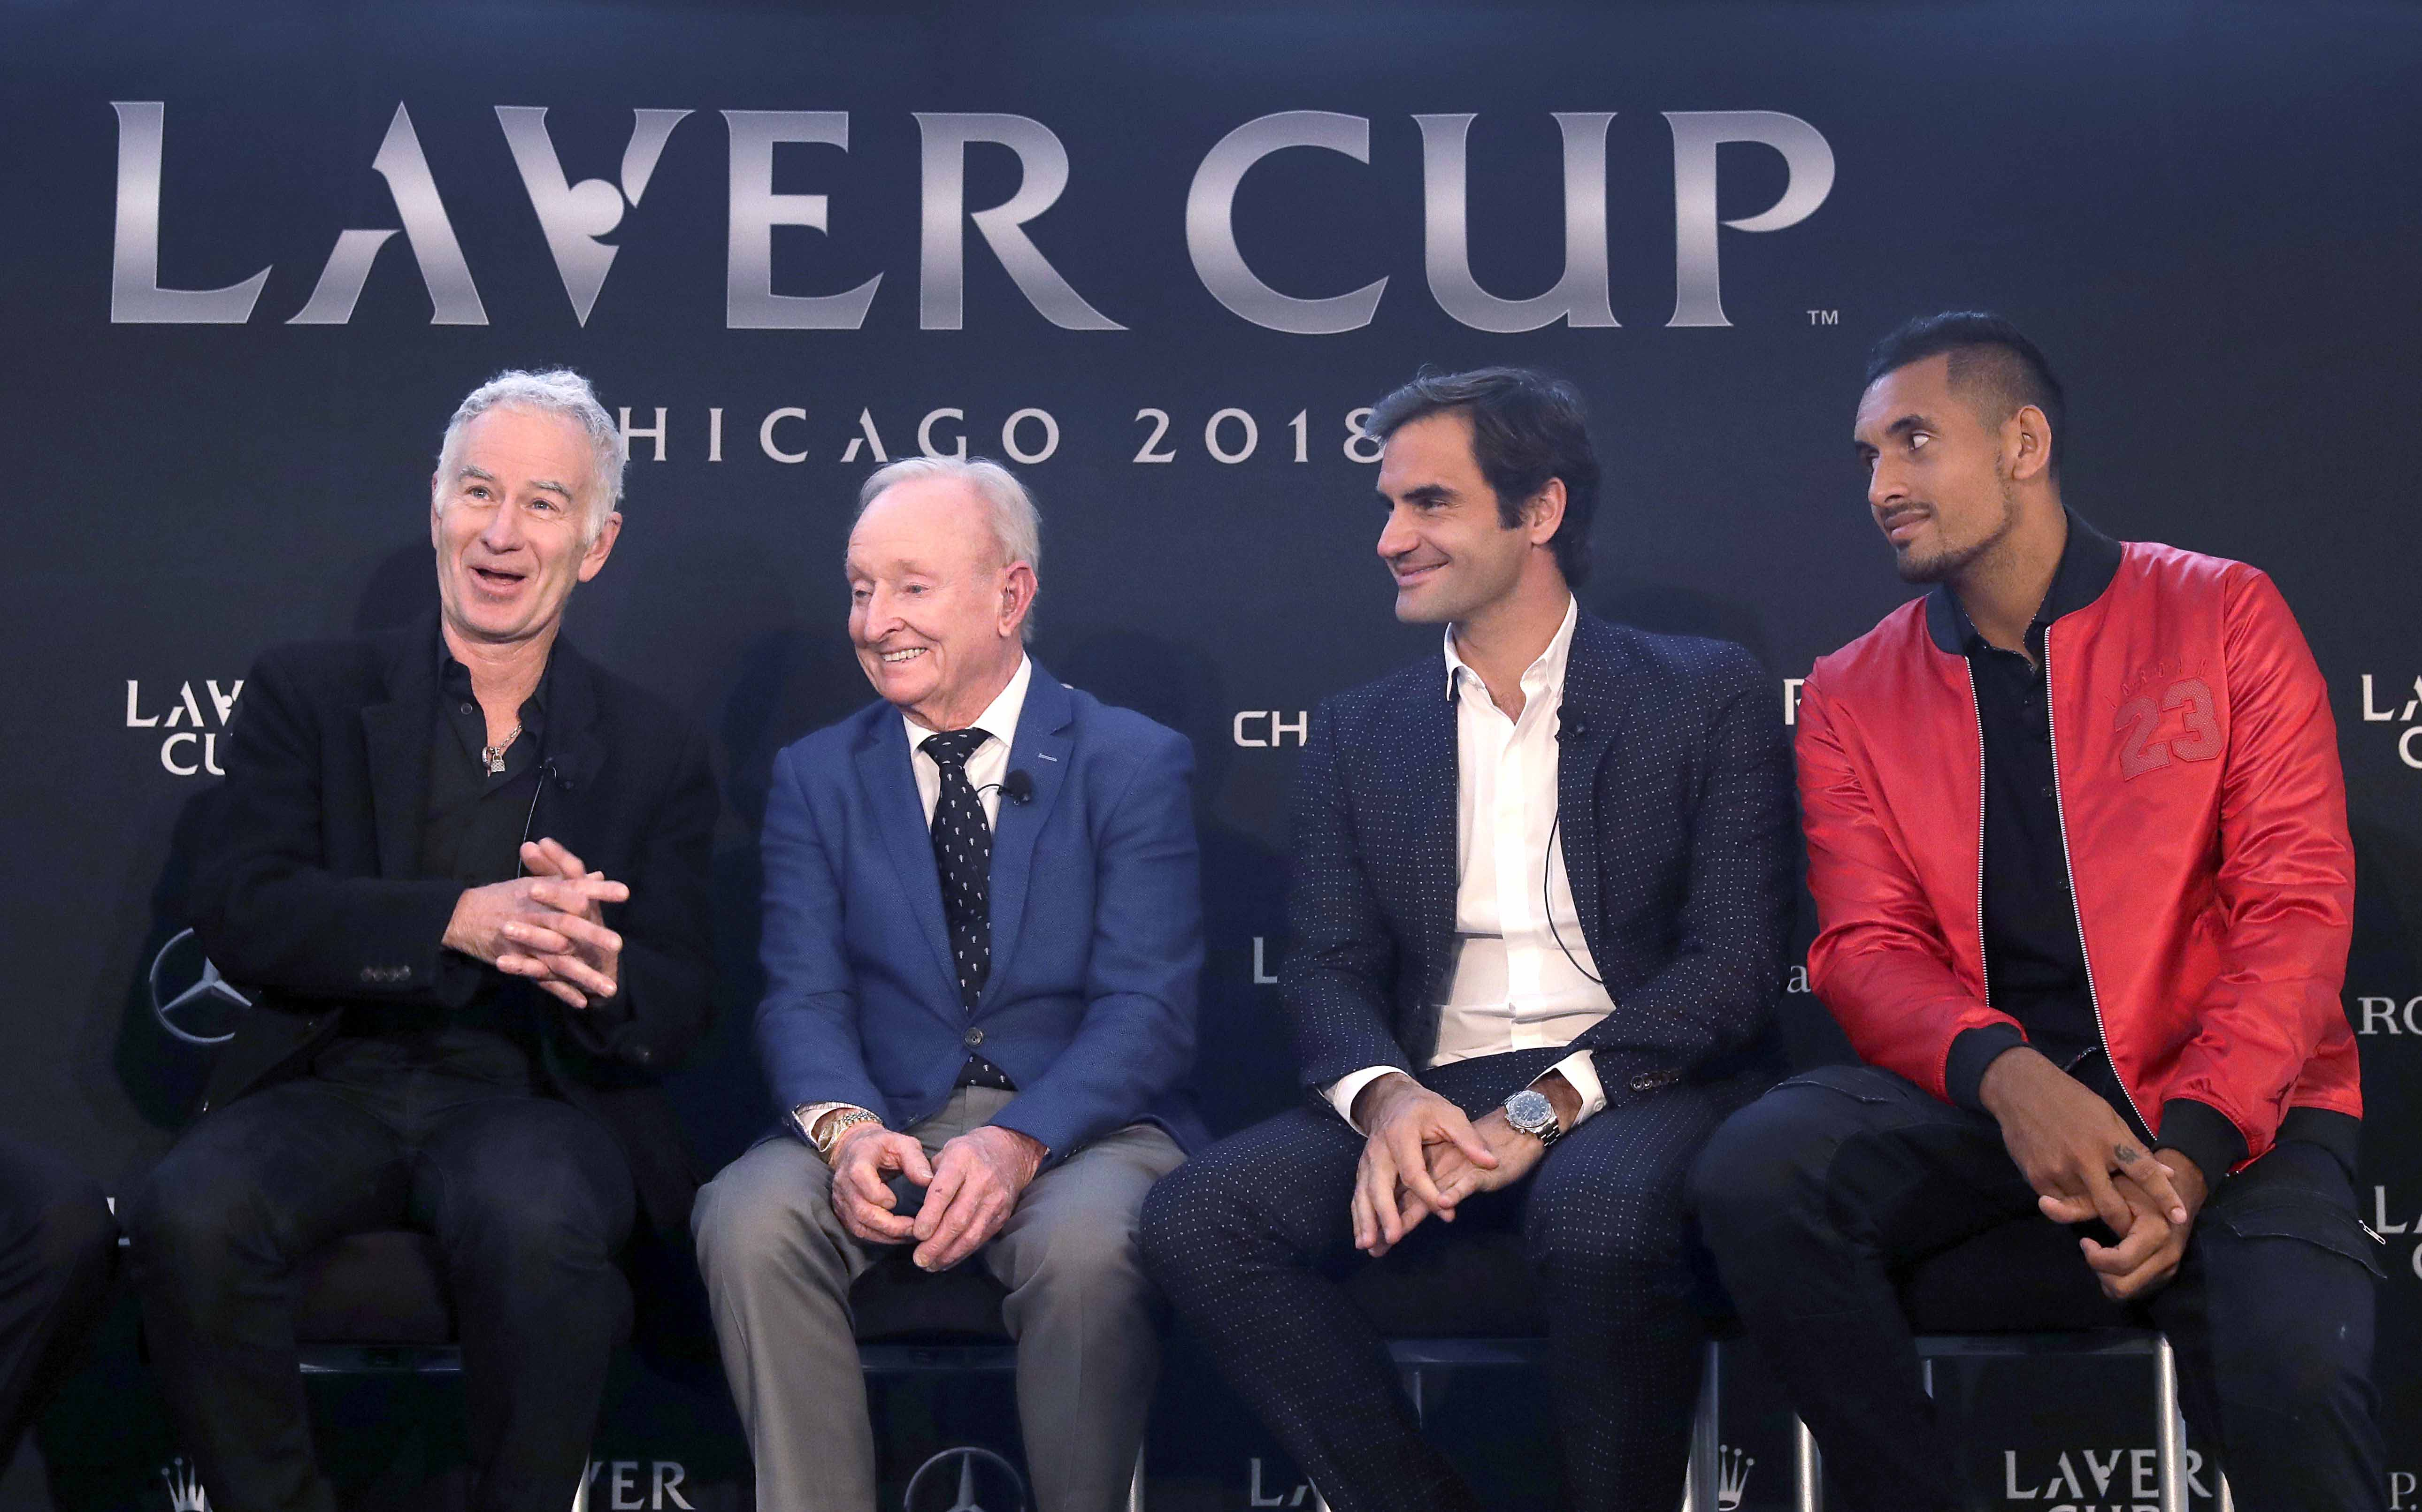 John McEnroe (left) responds to a question while promoting the Laver Cup tennis tournament with Rod Laver (second from left), Roger Federer and Nick Kyrgios Monday in Chicago.